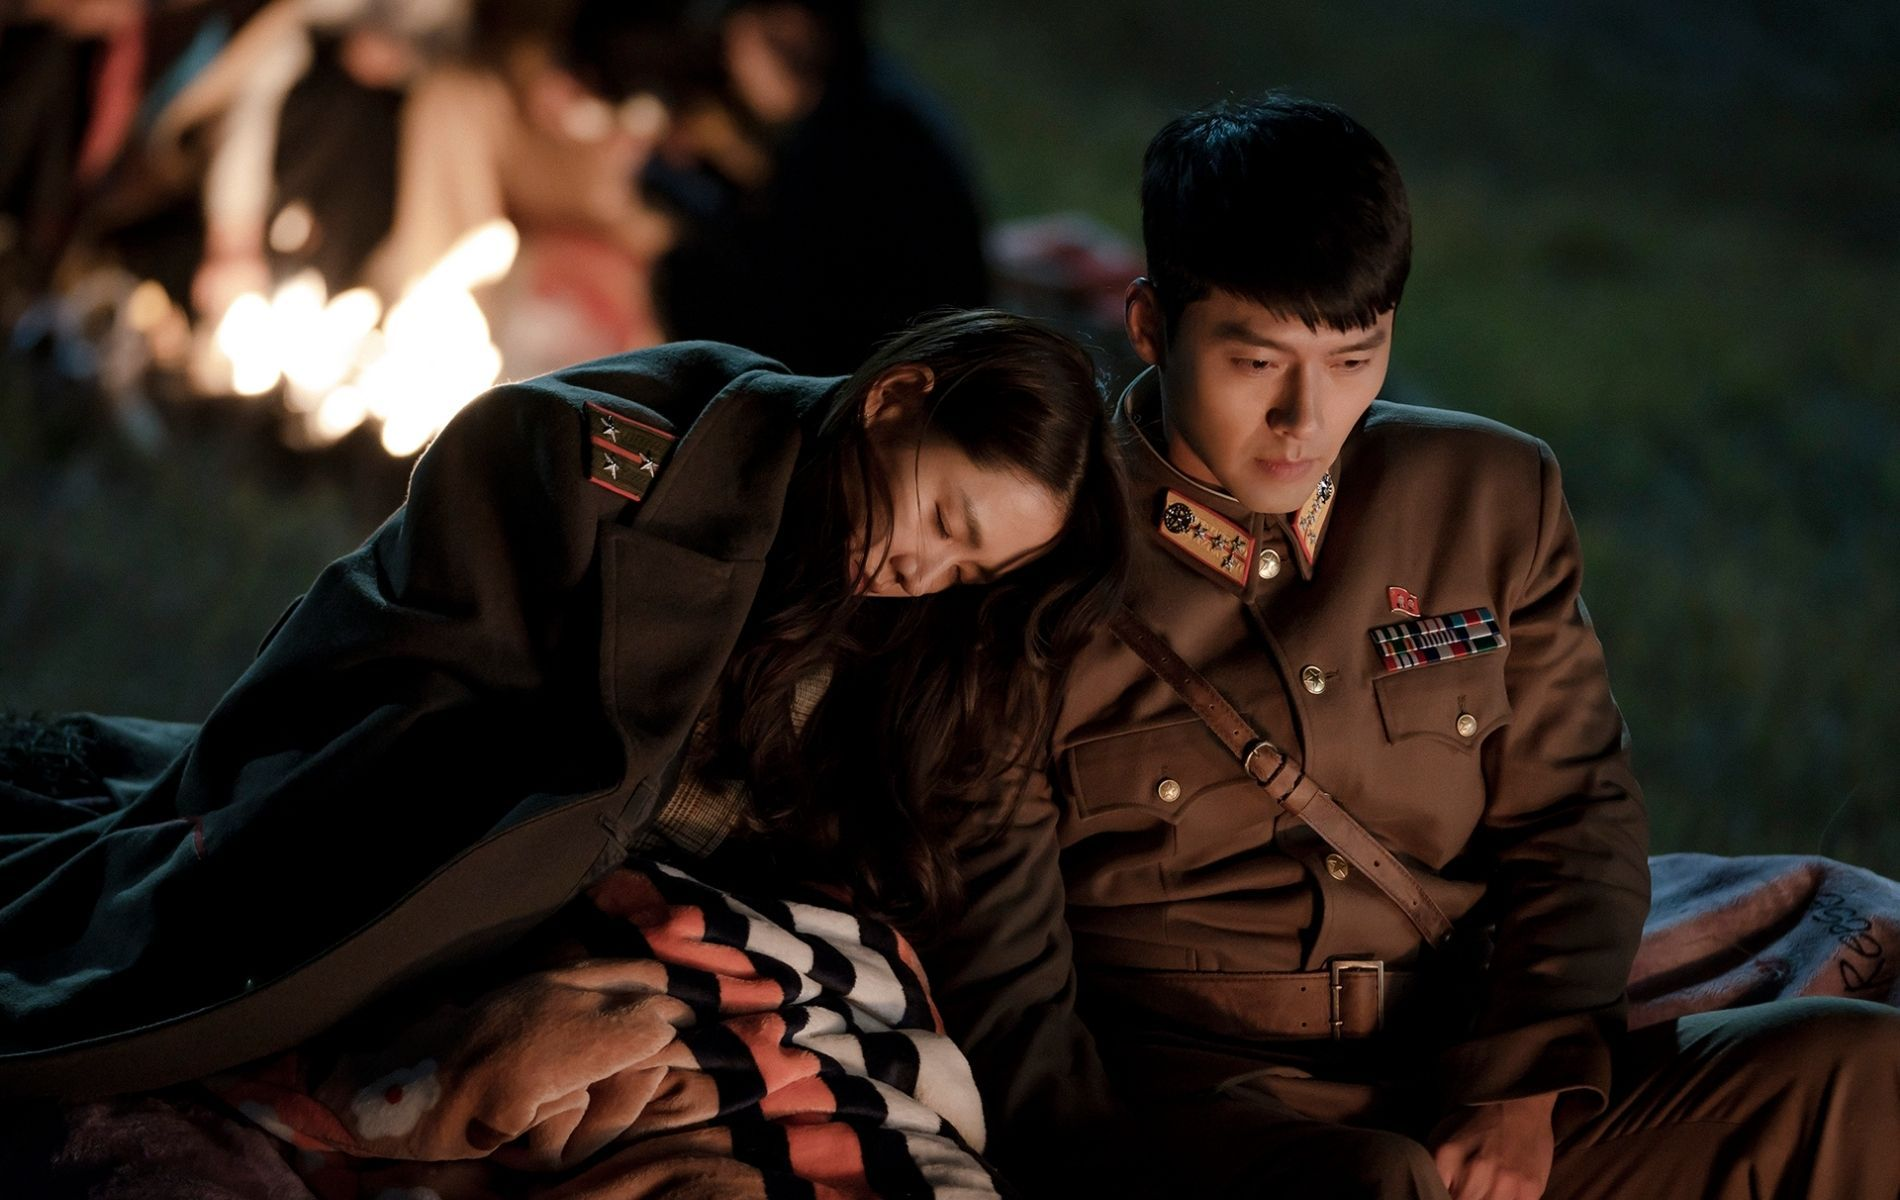 Crash Landing On You Stars Hyun Bin And Son Ye Jin Reunite On Screen For A Philippines Ad Campaign